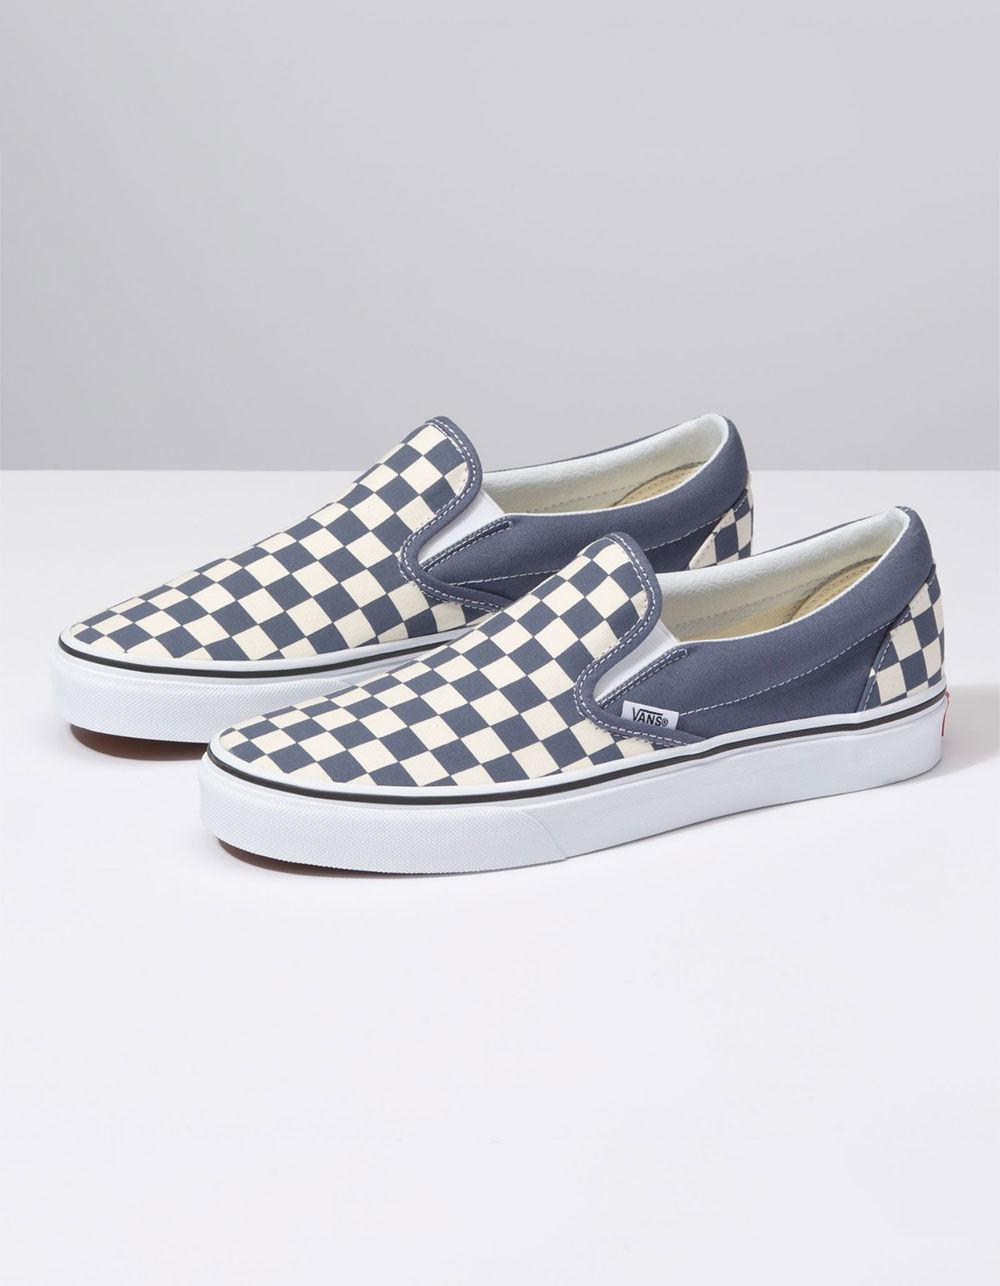 a3698c369e8 Lyst - Vans Checkerboard Grisaille   True White Classic Slip-on Shoes in  White for Men